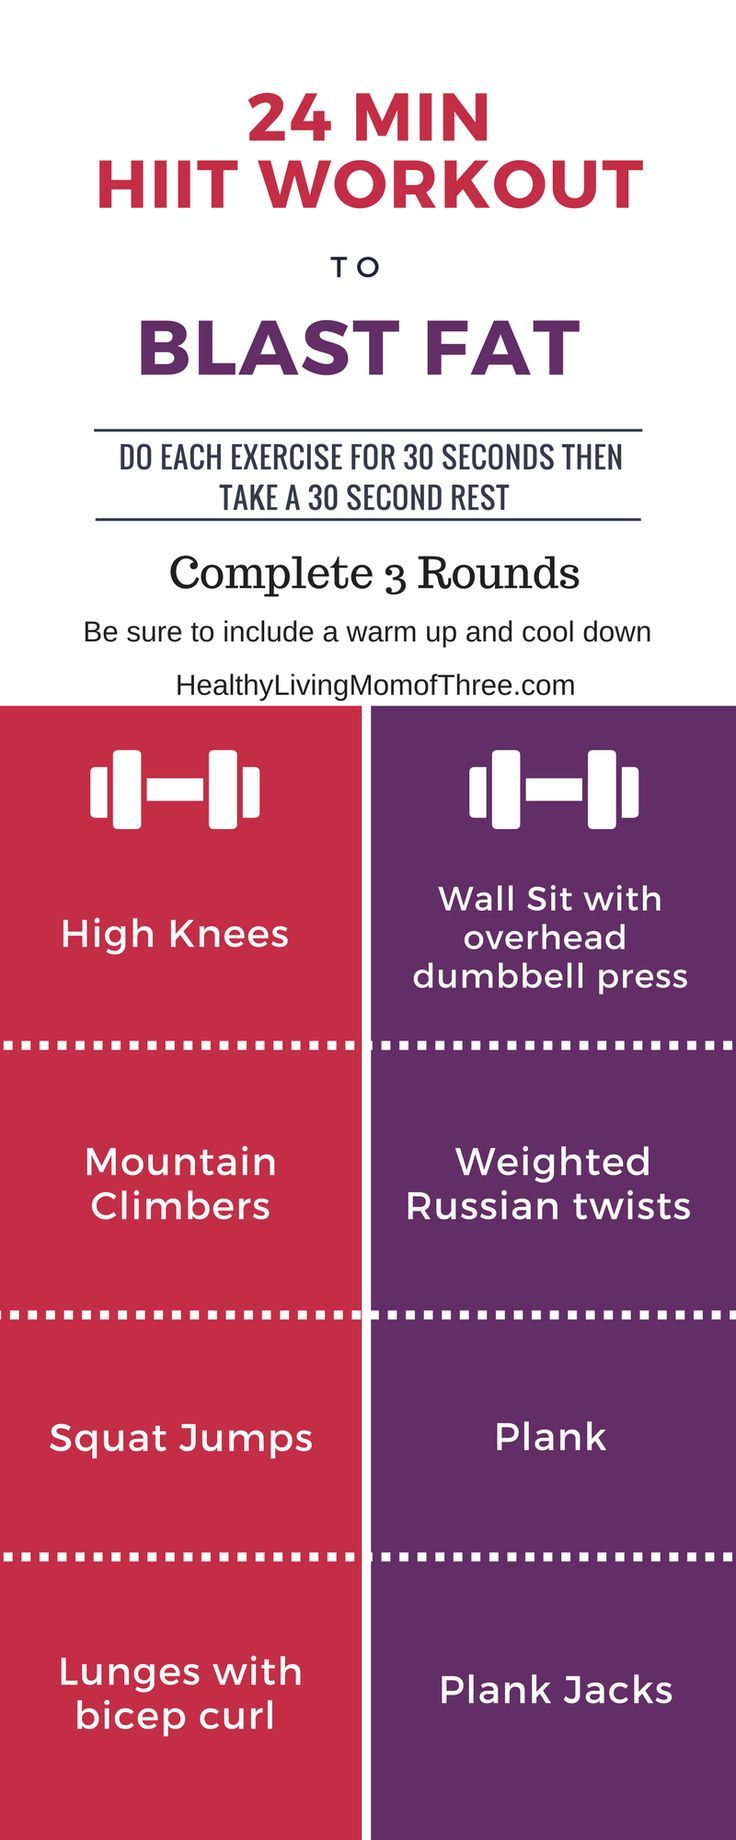 Hiit Cardio Also Known As High Intensity Interval Training Is Amazing For Burning Fat And Weight Loss Here Is A Fat Blasting 24 Min Hiit Workout